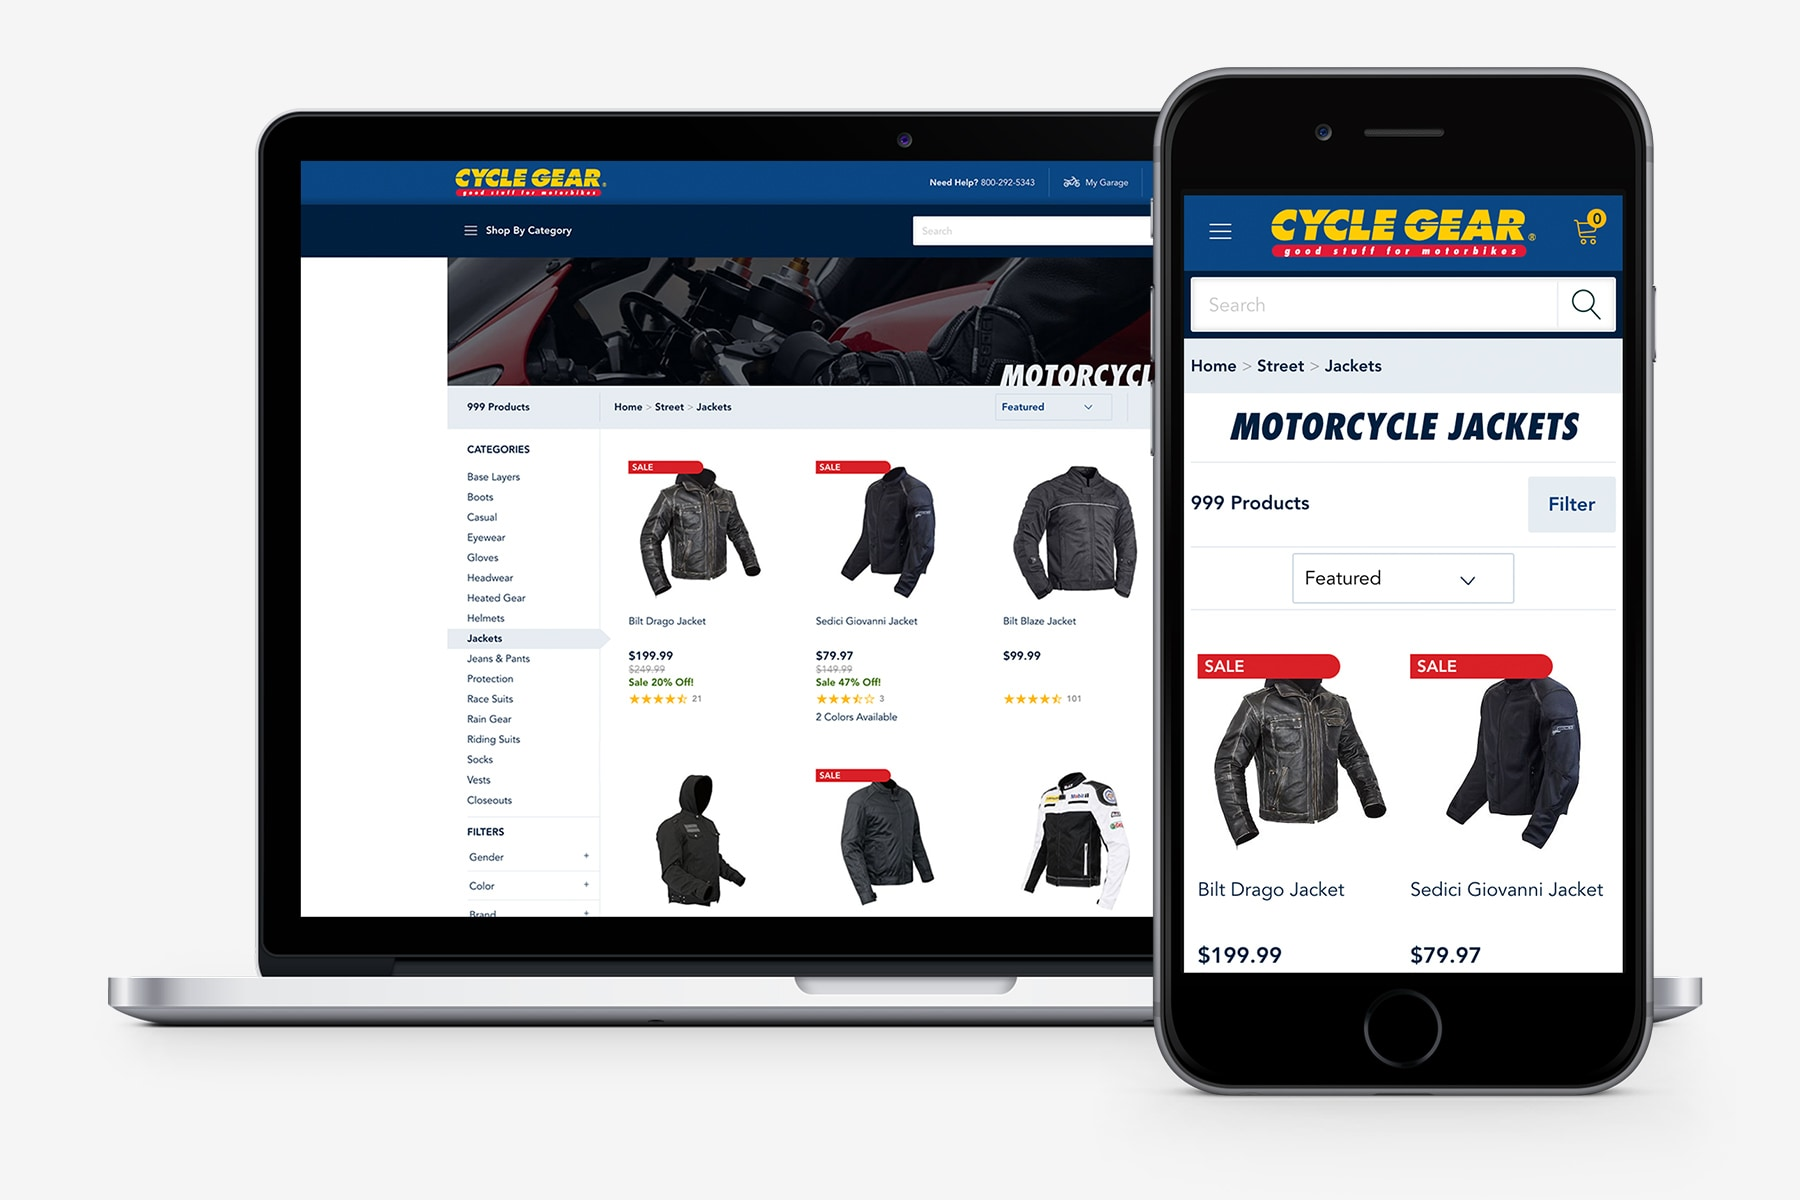 06 Cycle Gear PD Browse.jpg